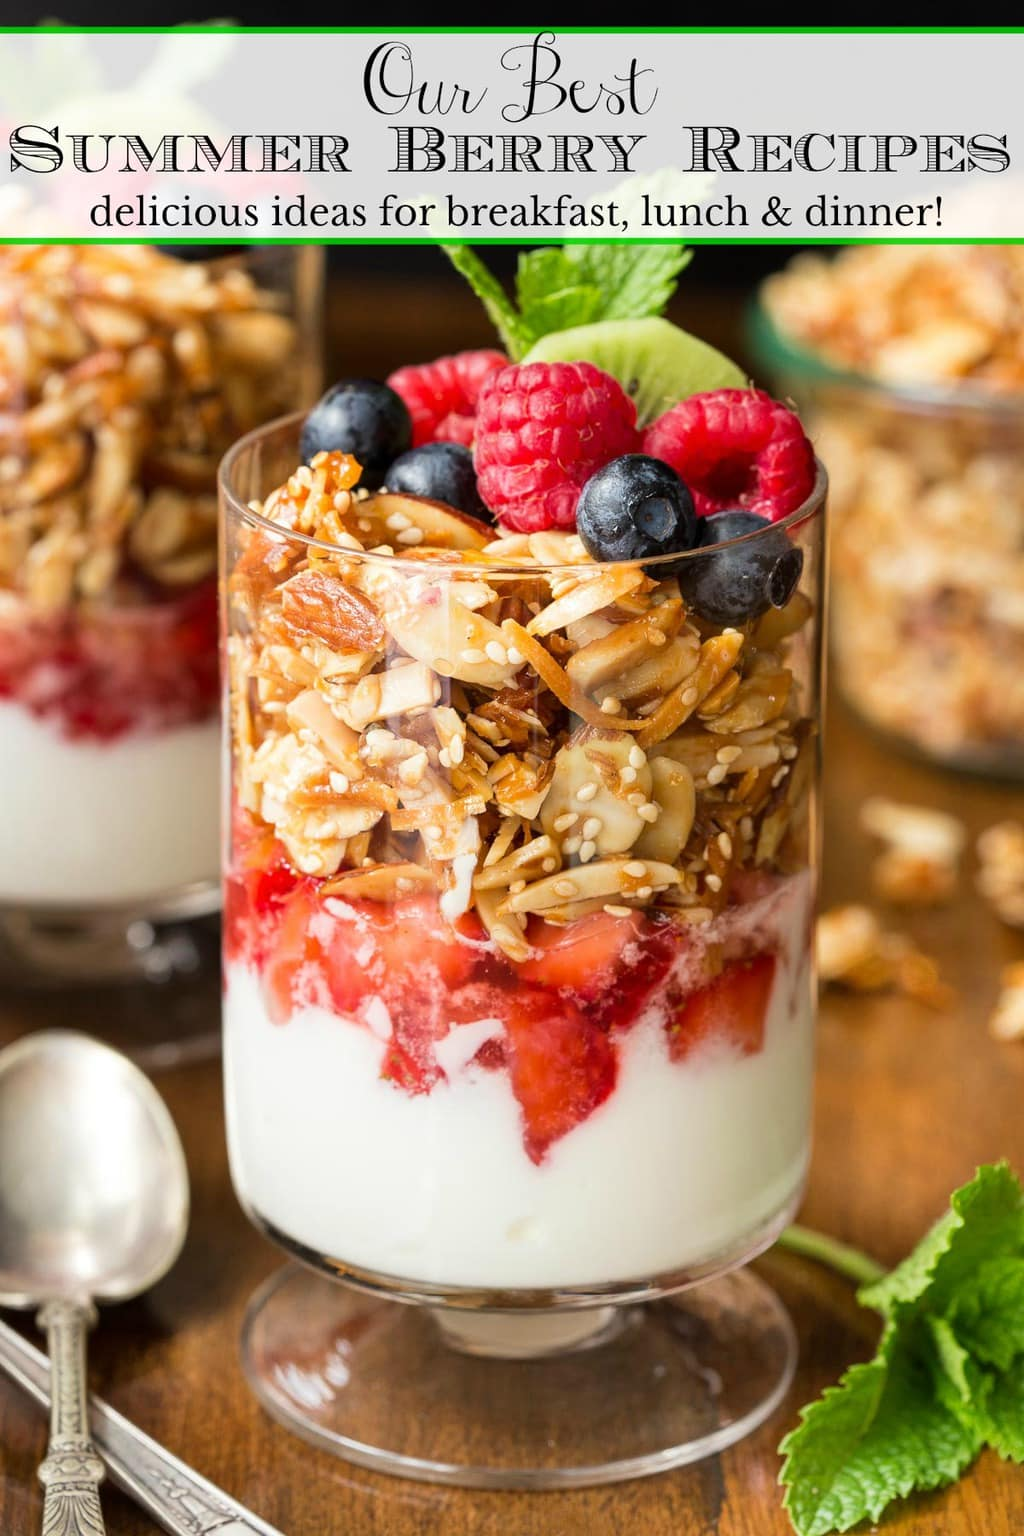 Summer Berries – Delicious Recipe Ideas for Breakfast, Lunch and Dinner